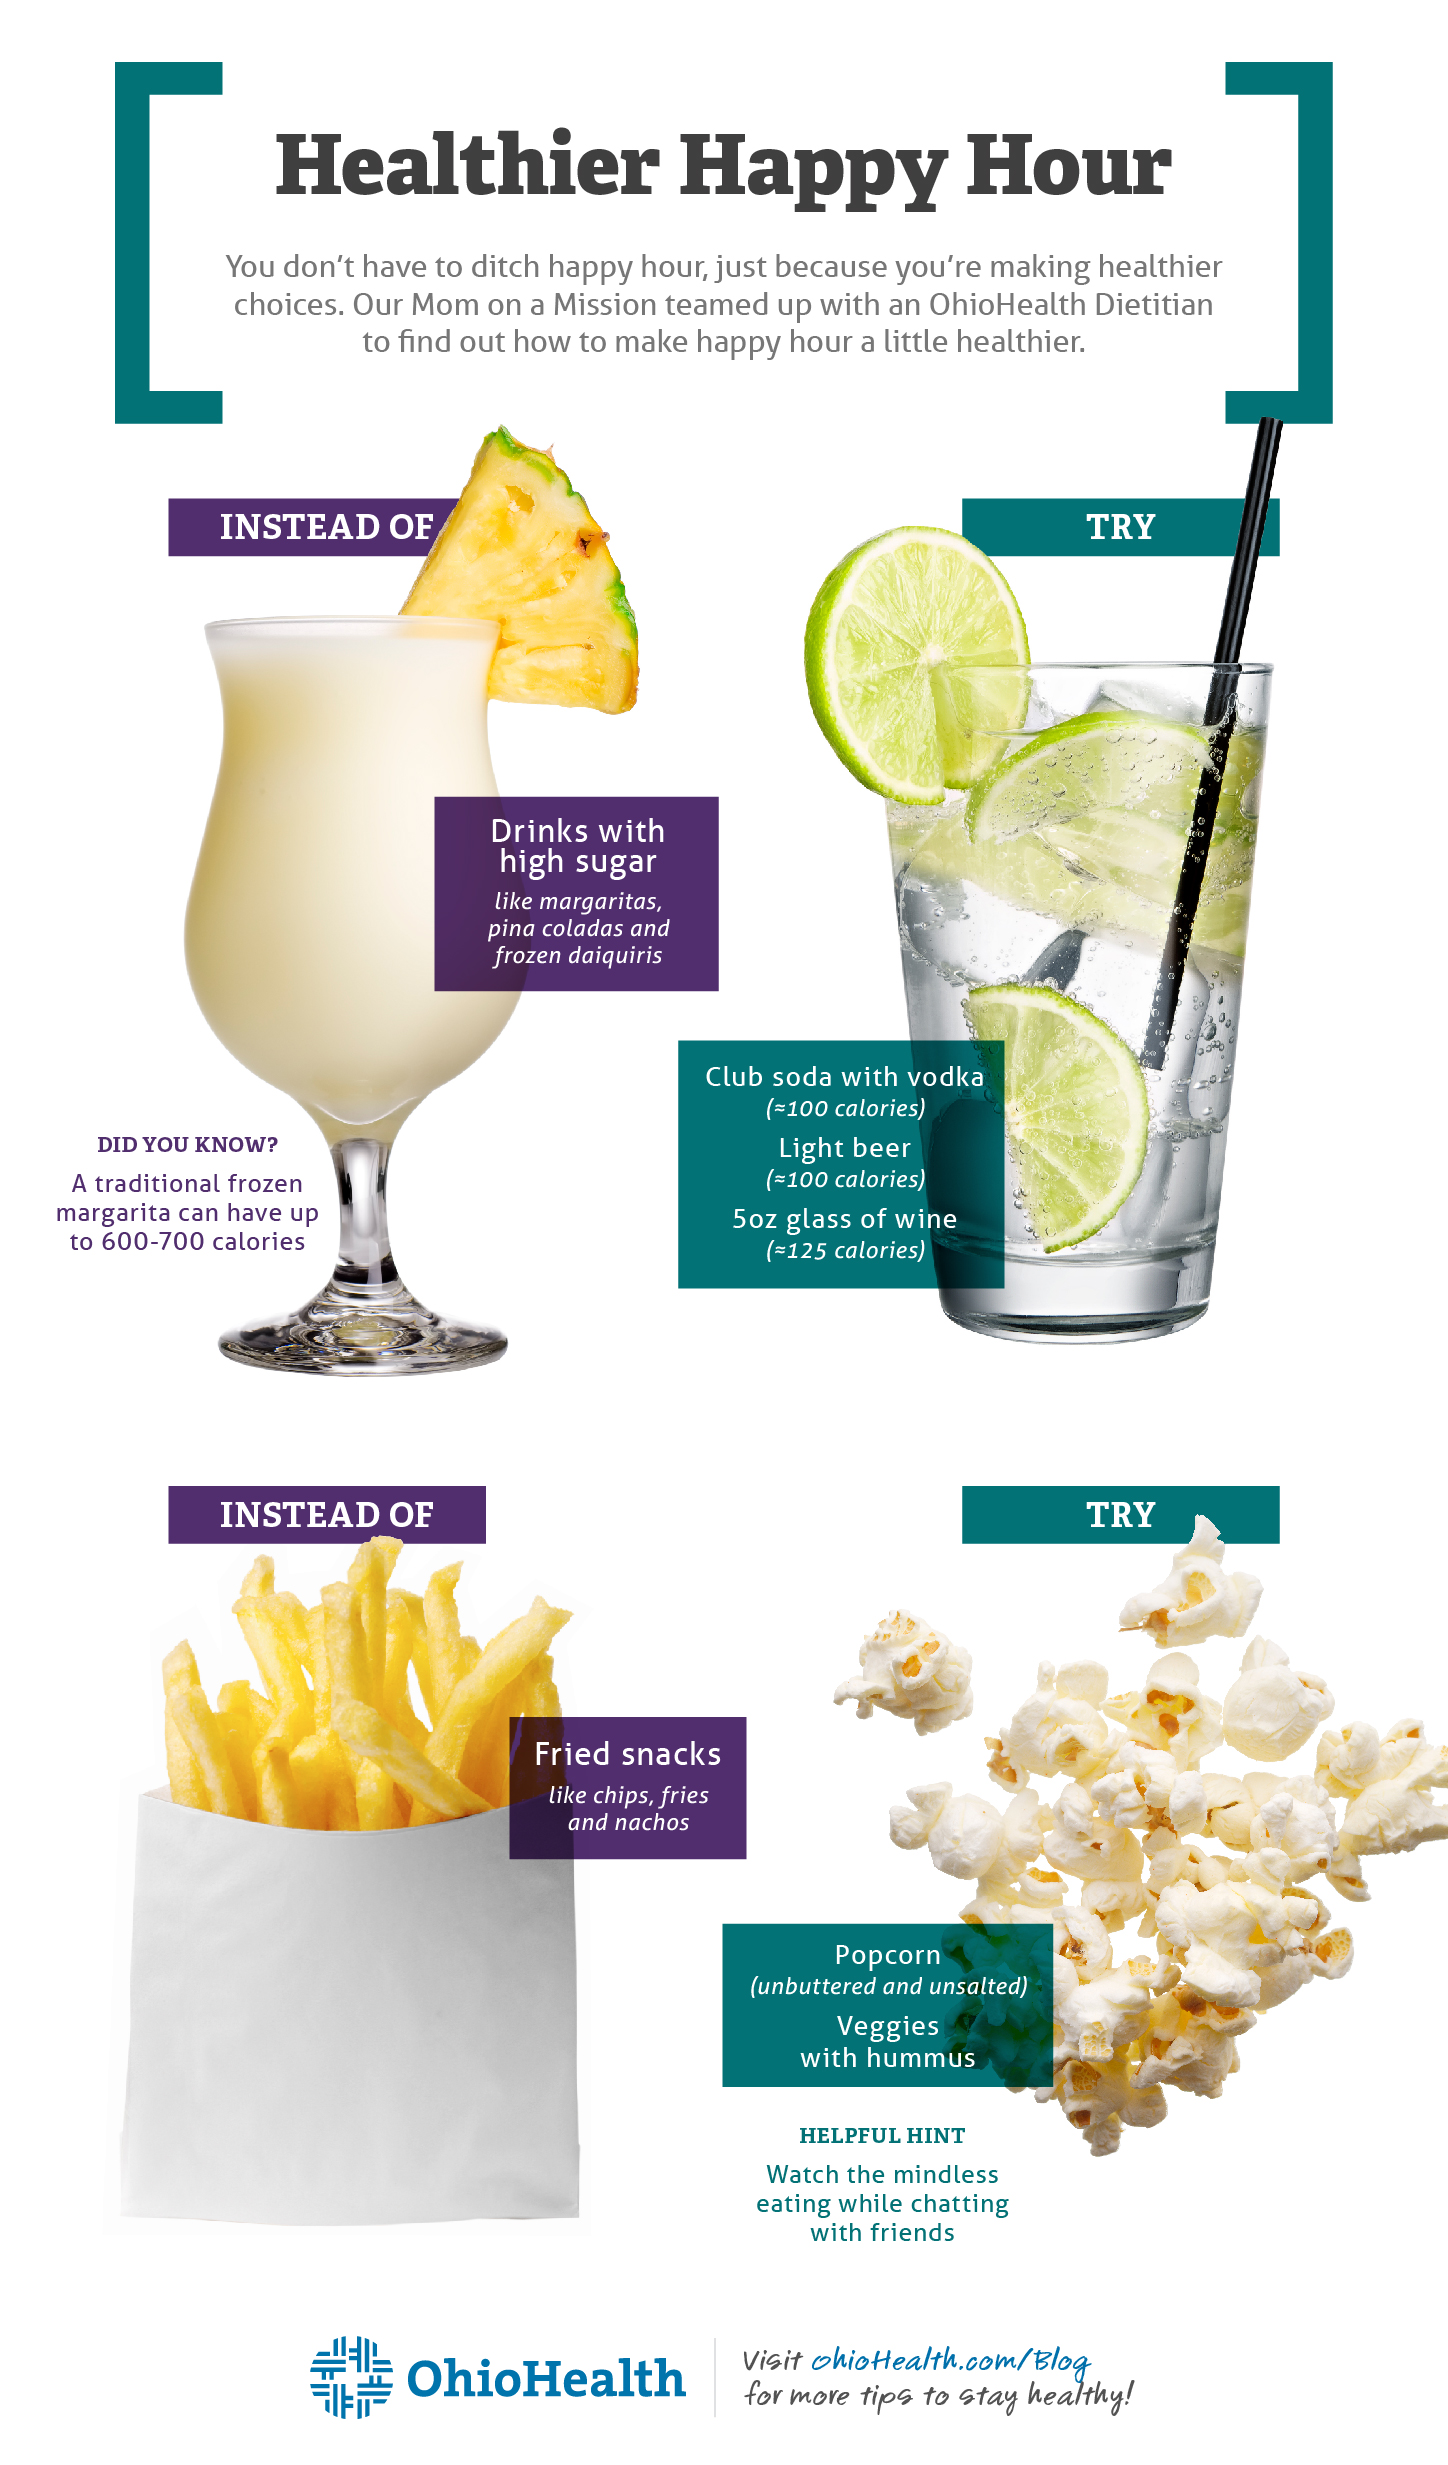 Infographic describing healthy swaps to make with drinks and foods at happy hour